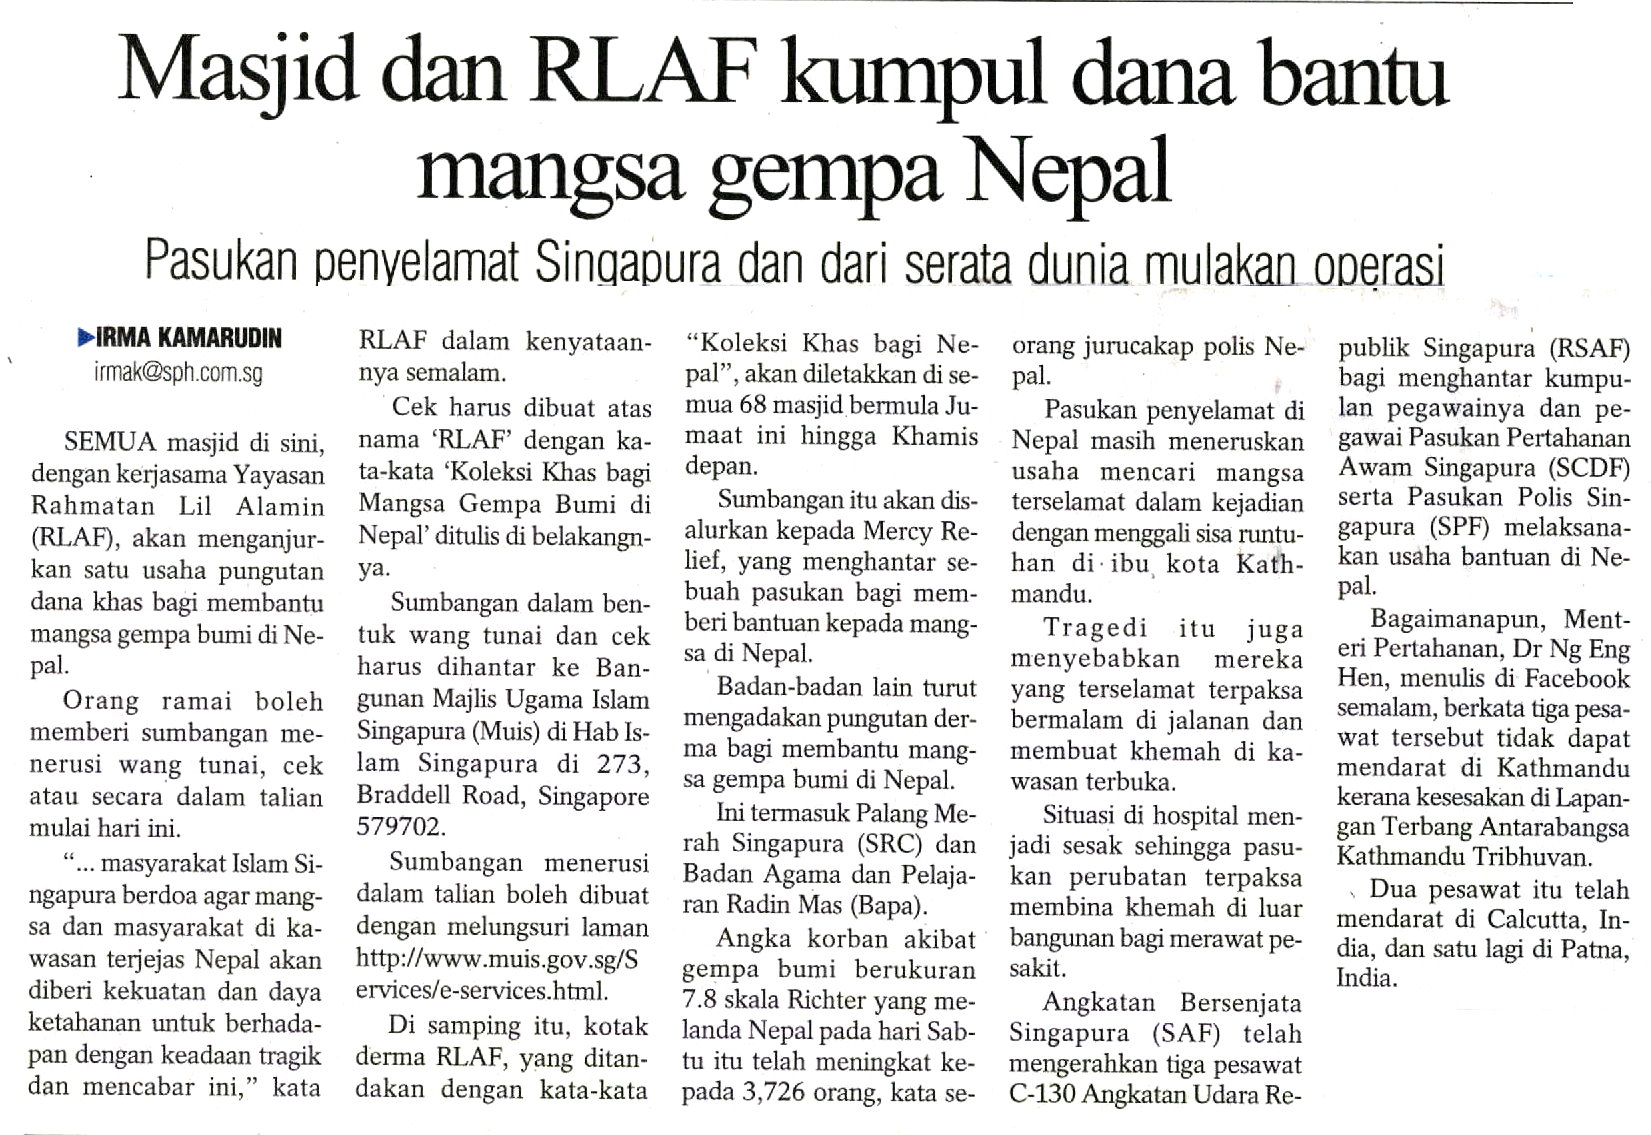 20150428_N65_BHS_BH_1_BW_MOSQUE~AND~RLAF~COLLECT~FUND~HELP~NEPALESE~QUAKE~VICTIMS